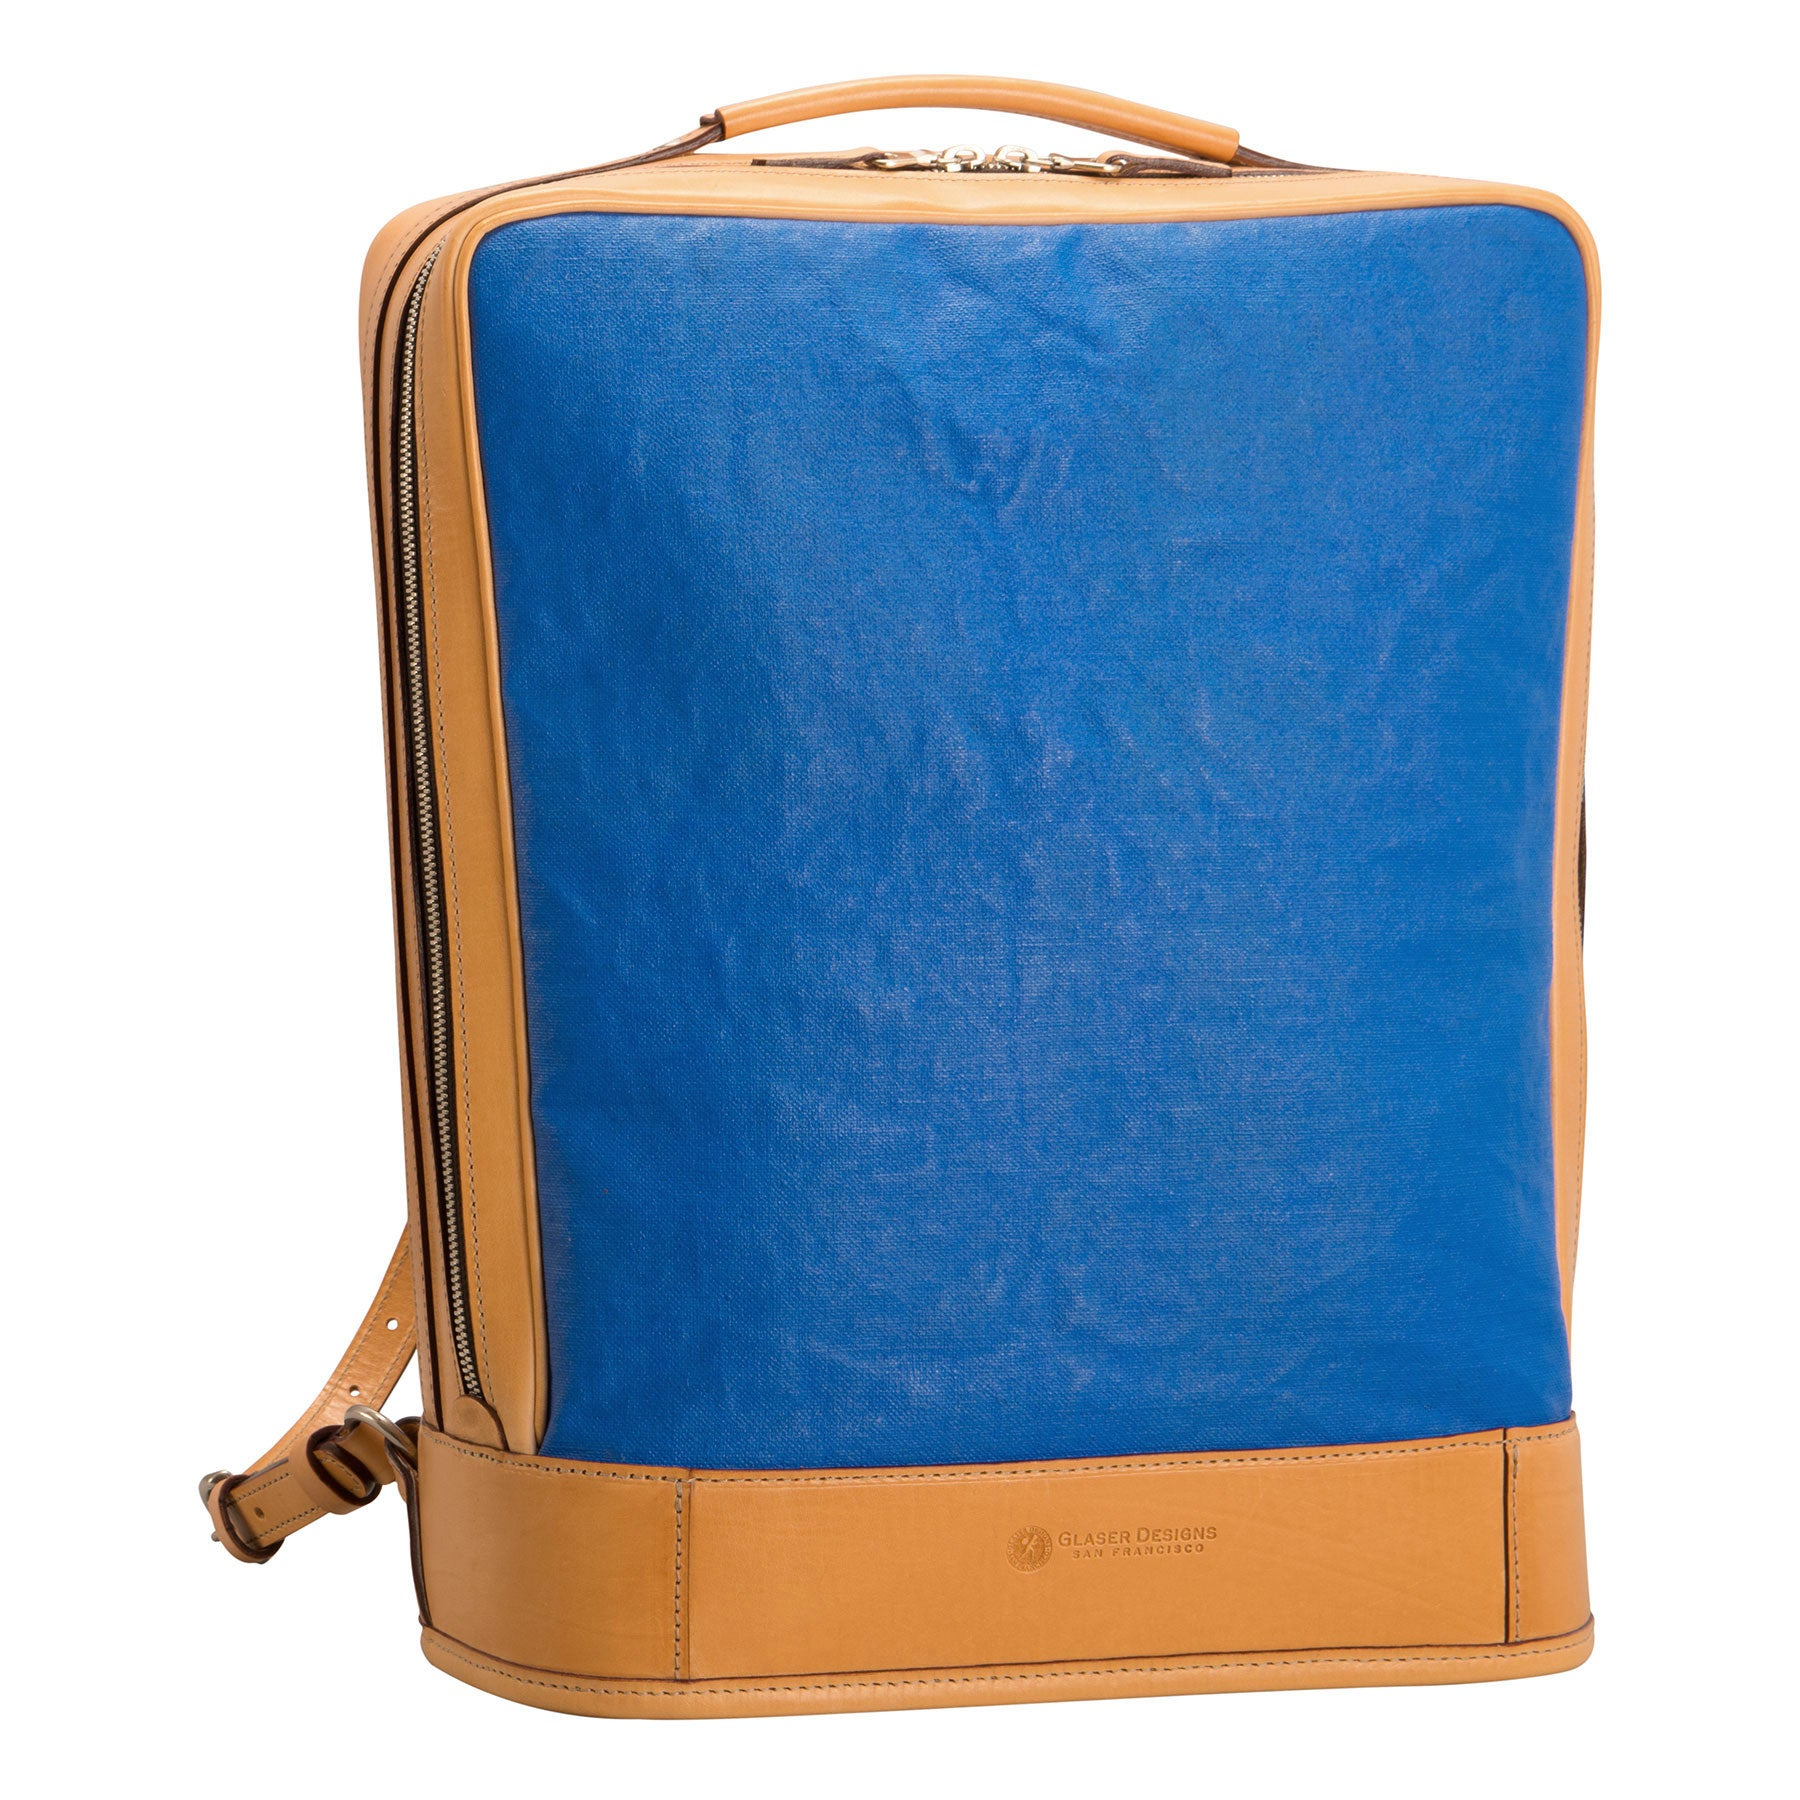 Glaser Designs Business Backpack. Hand burnished Natural vegetable tanned leather with Hand painted Light Blue linen. Solid brass hardware. Made to measure, custom size.